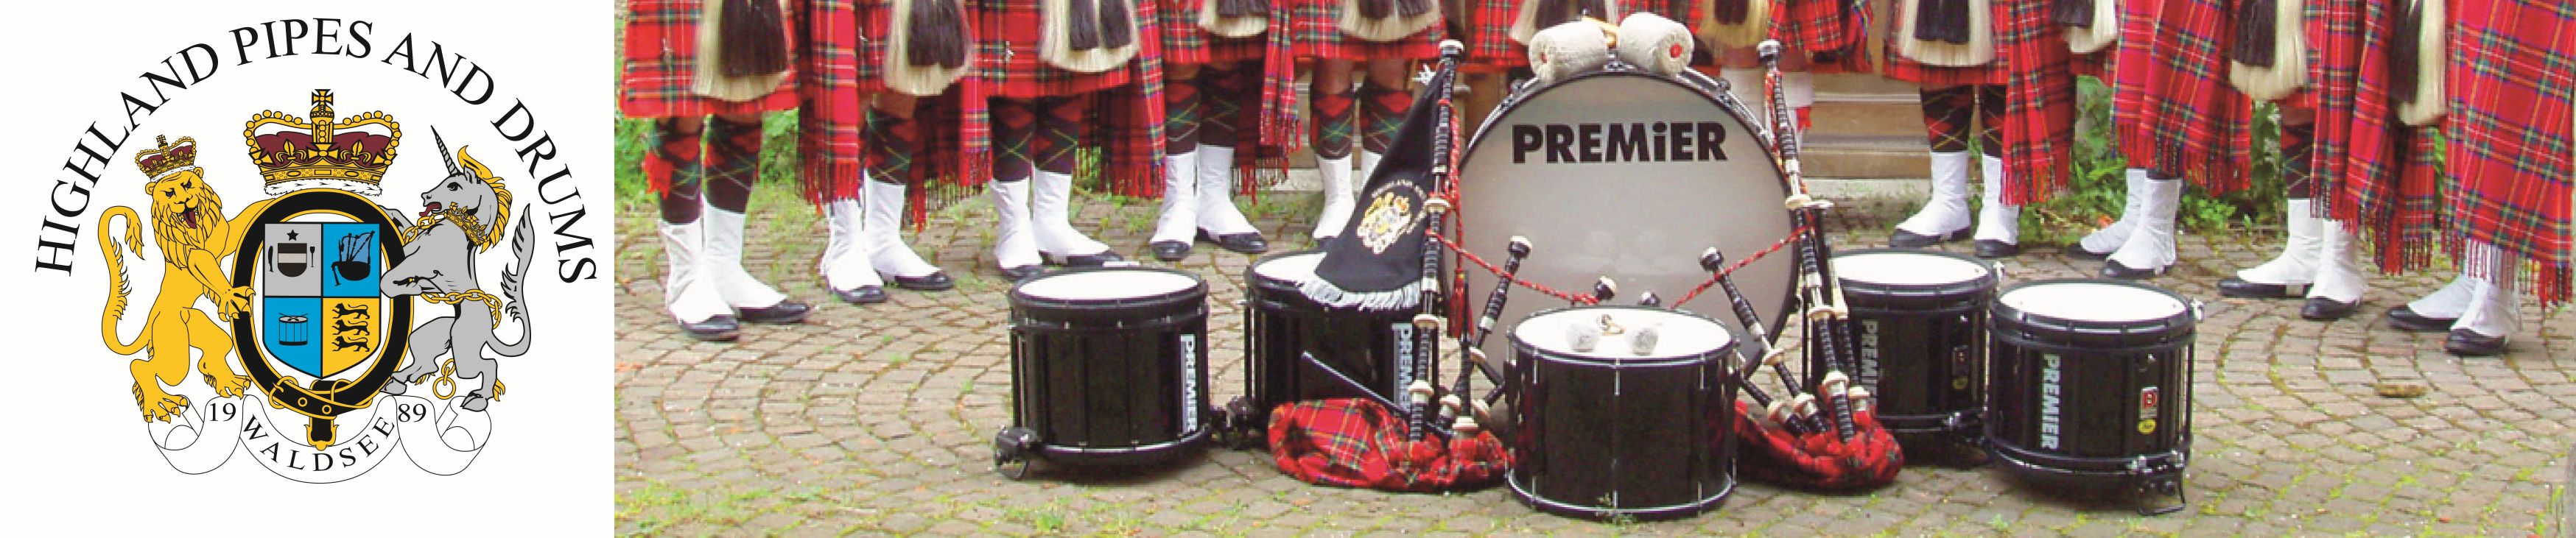 Highland Pipes and Drums of Waldsee e.V.